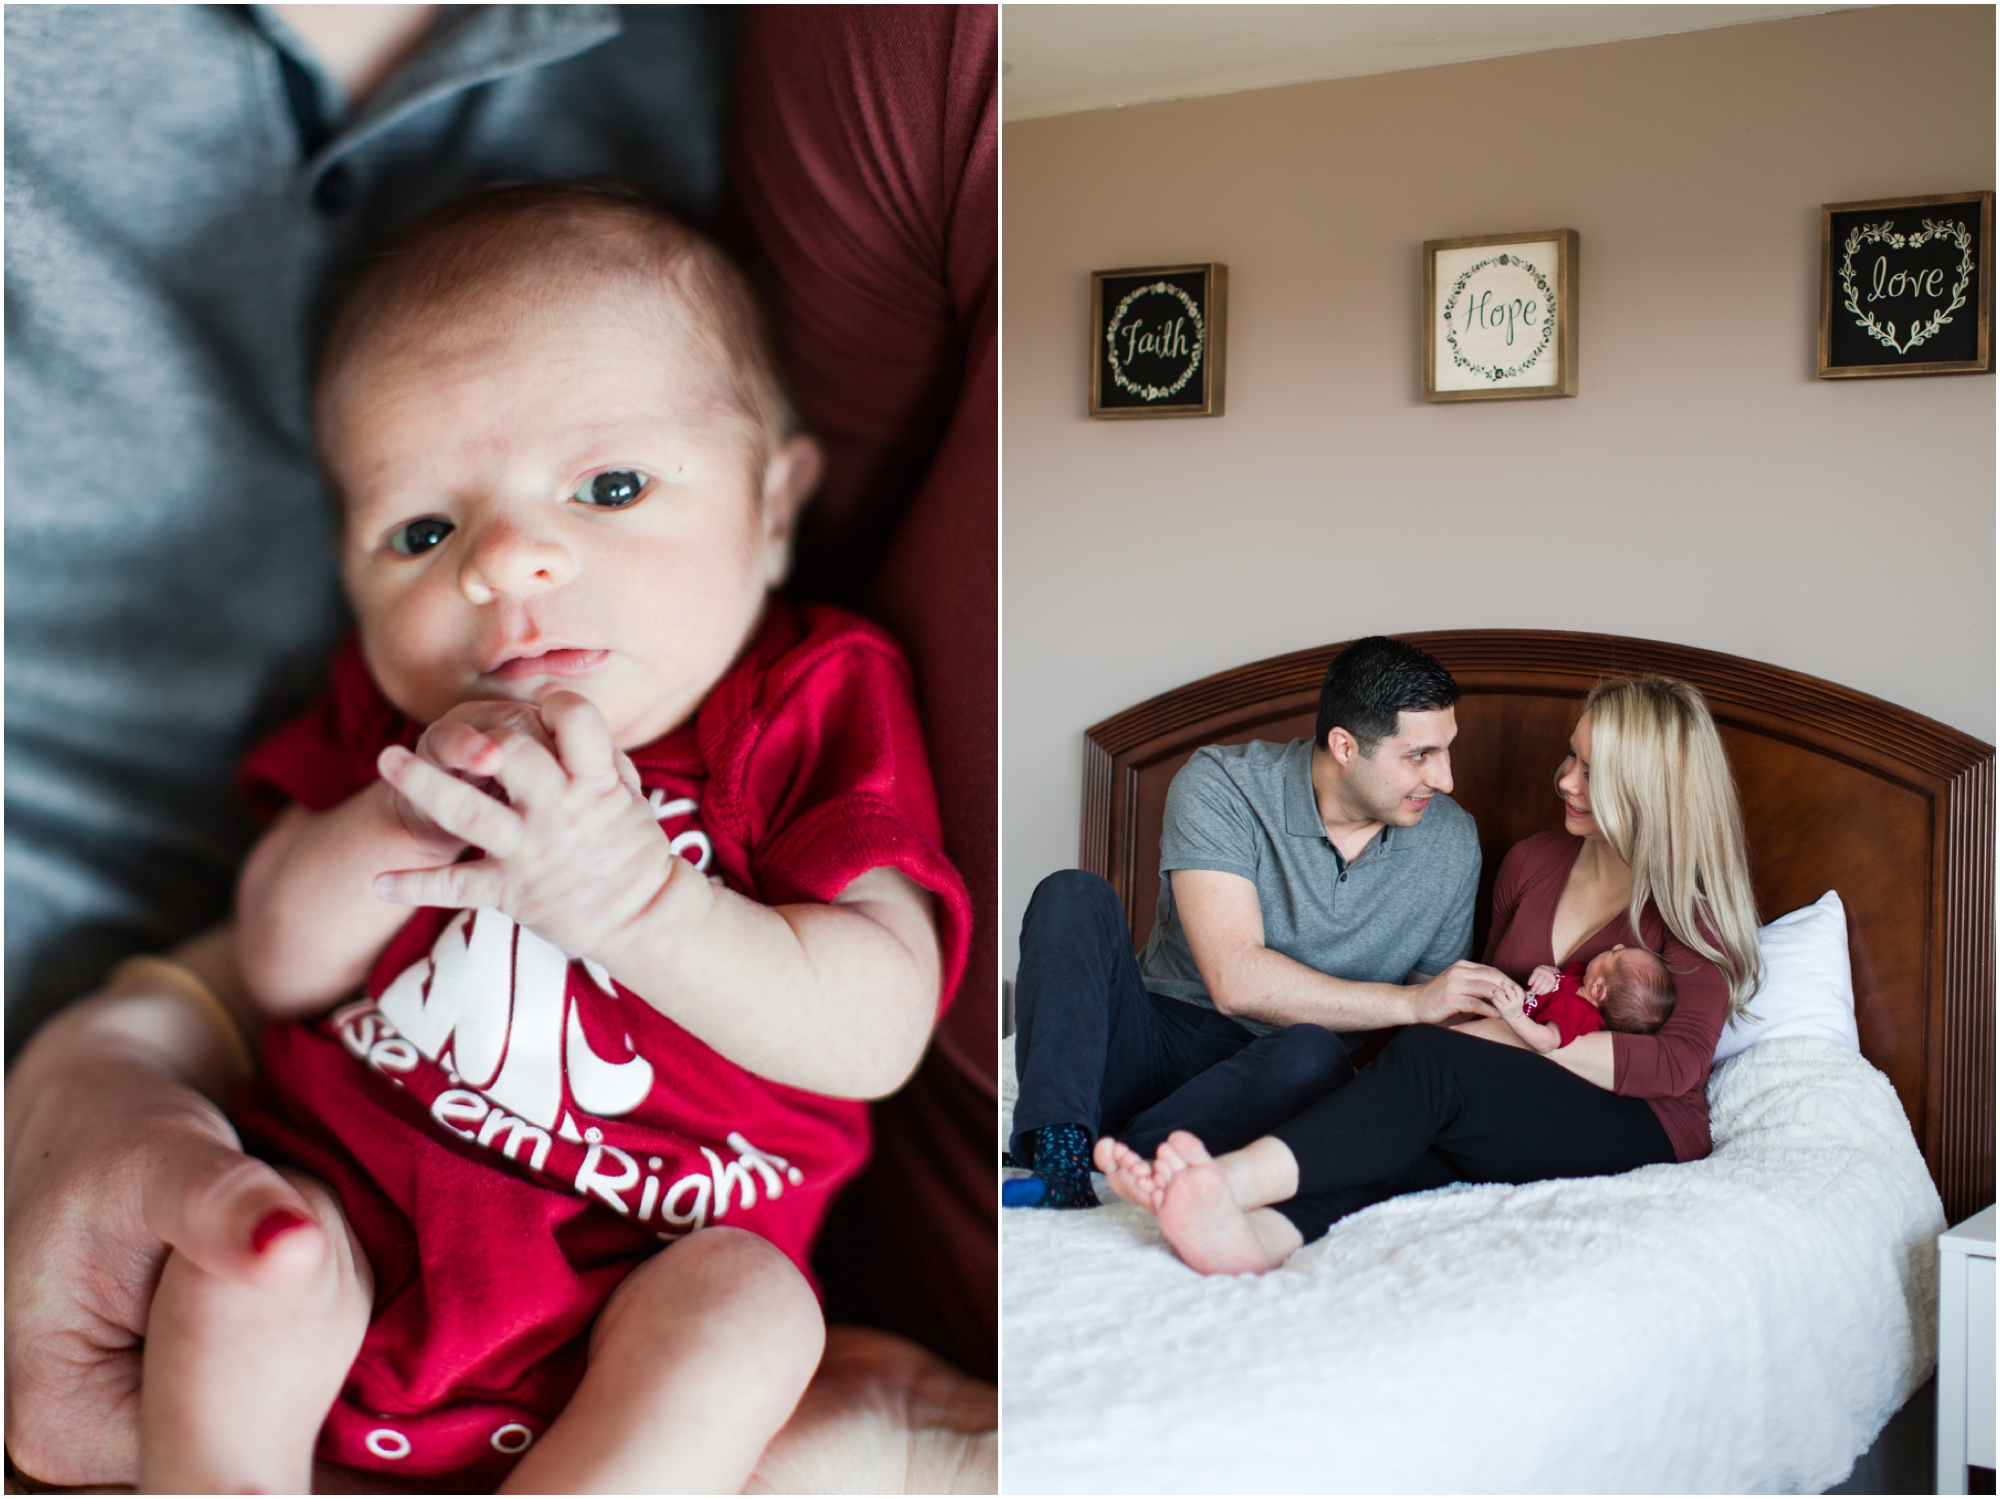 Lifestyle newborn photos by Briana Calderon Photography based in the Greater Seattle & Tacoma, WA_1026.jpg